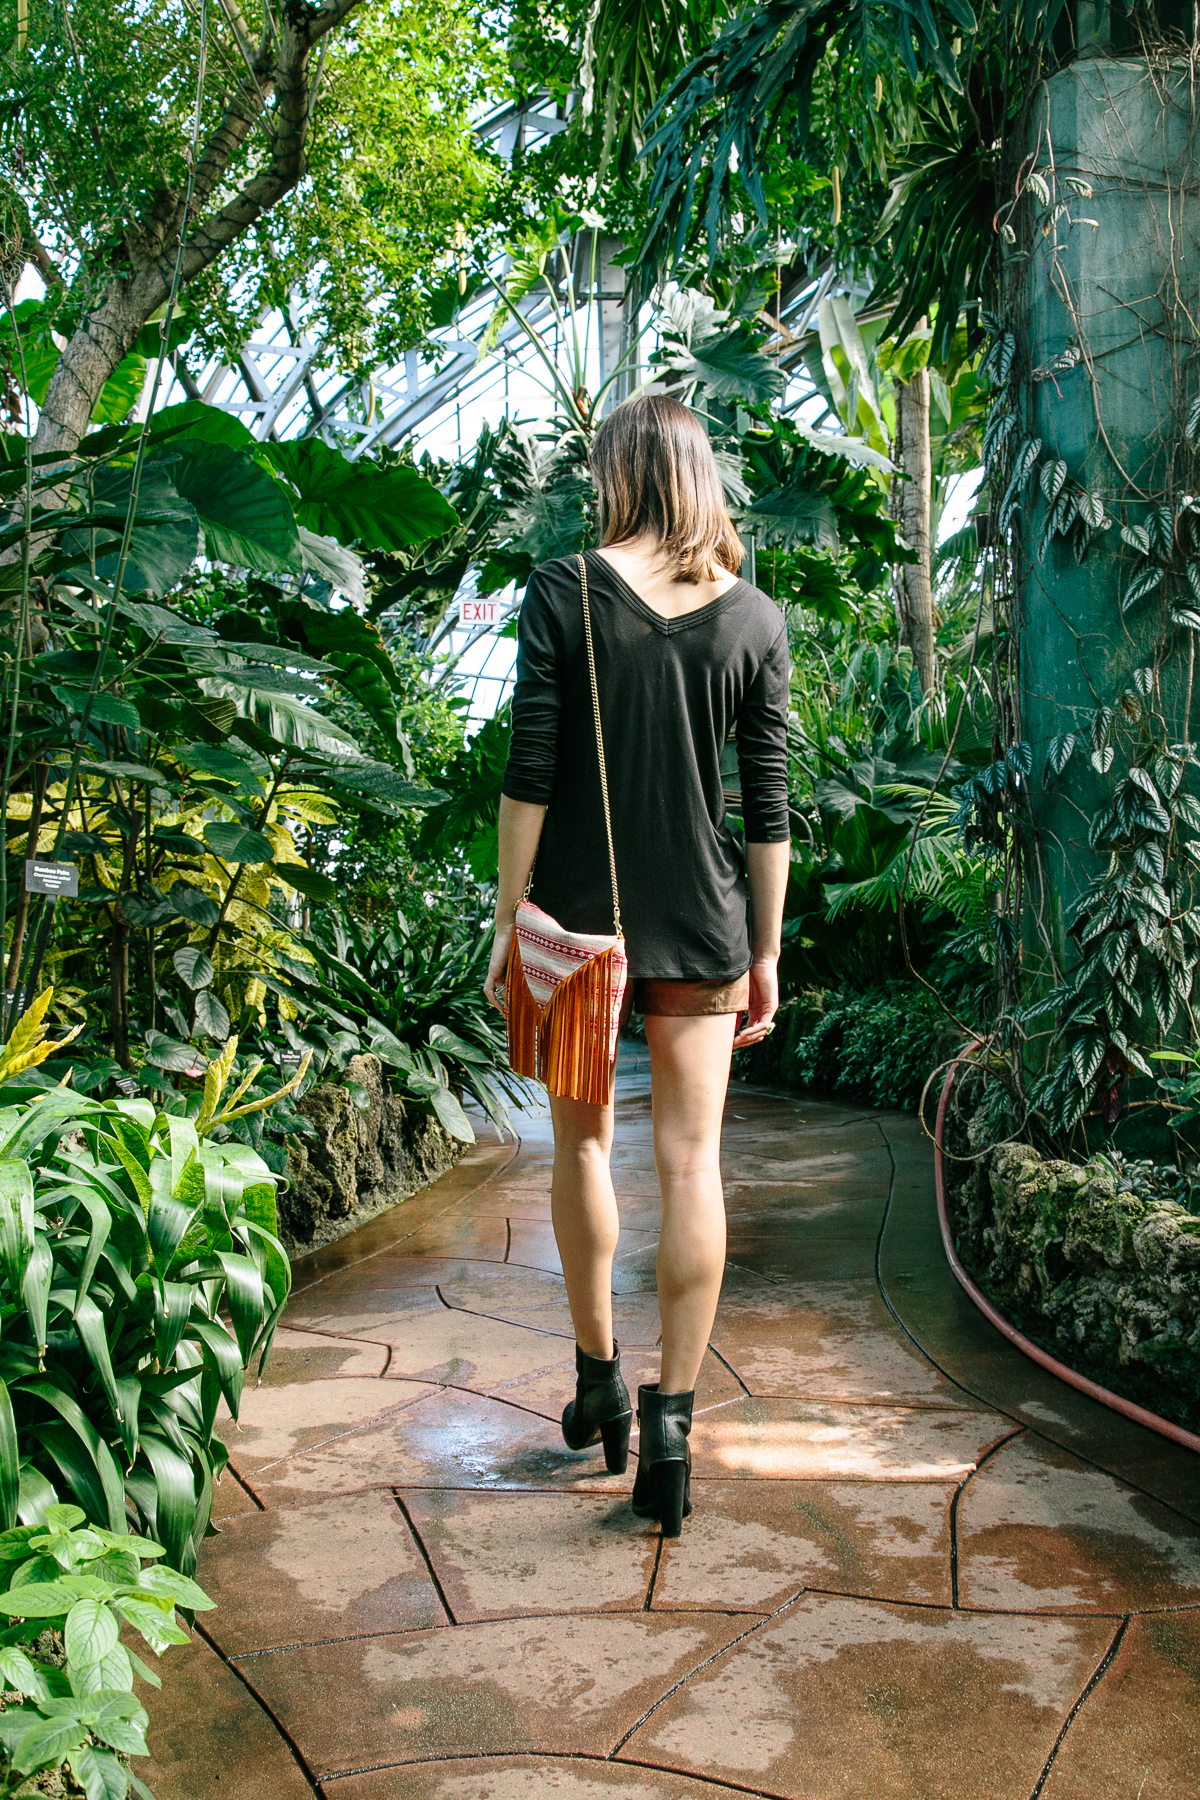 vegan leather shorts, quilted leather shorts, leather shorts, spring outfit, the fox and she, blair culwell staky